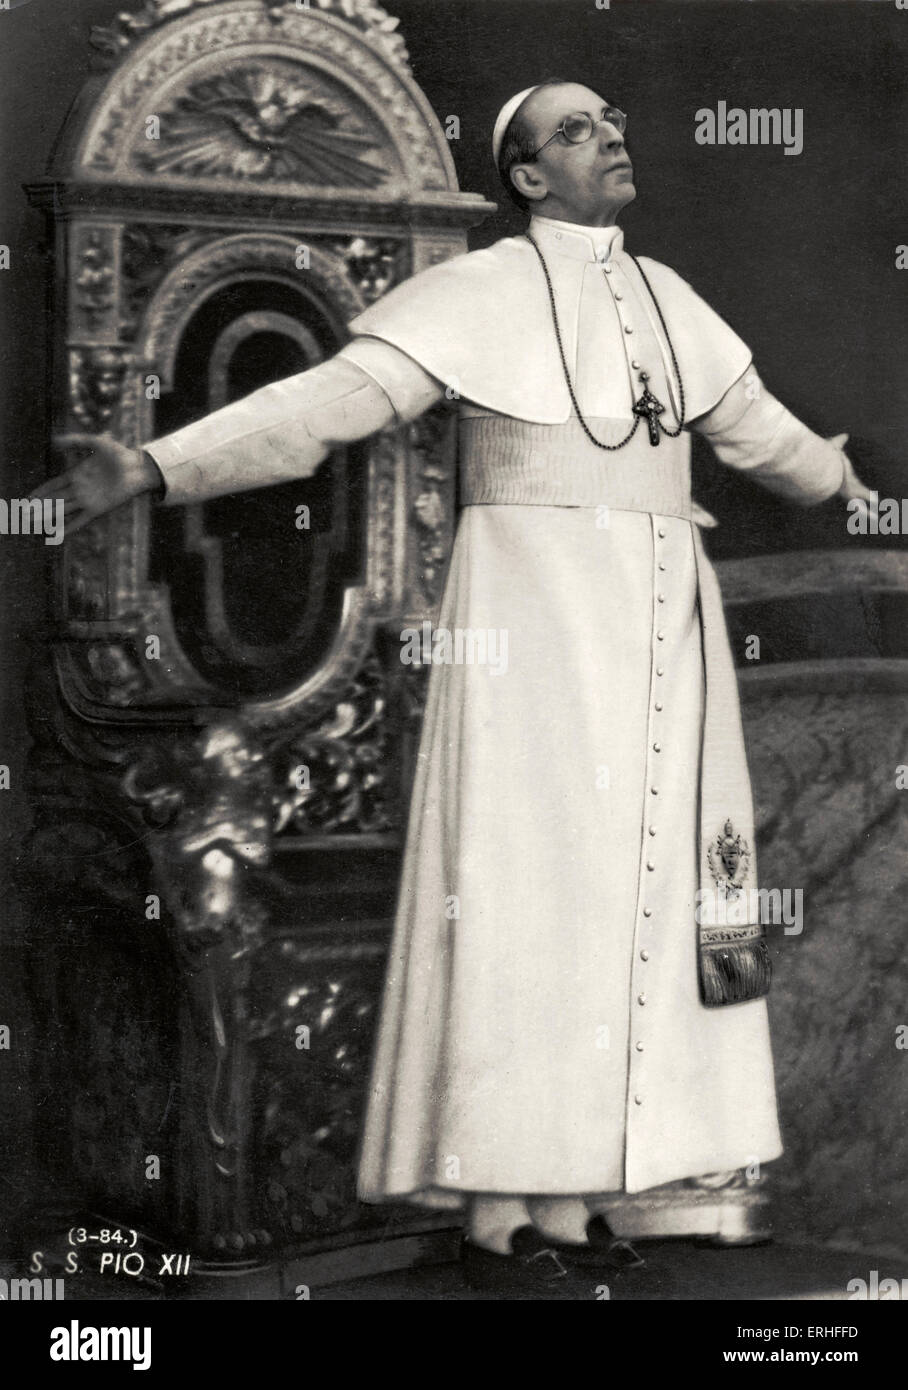 Pope Pius XII - portrait. Pope from 2 March 1939 to 1958 - 2 March 1876 - 9 October 1958. Stock Photo